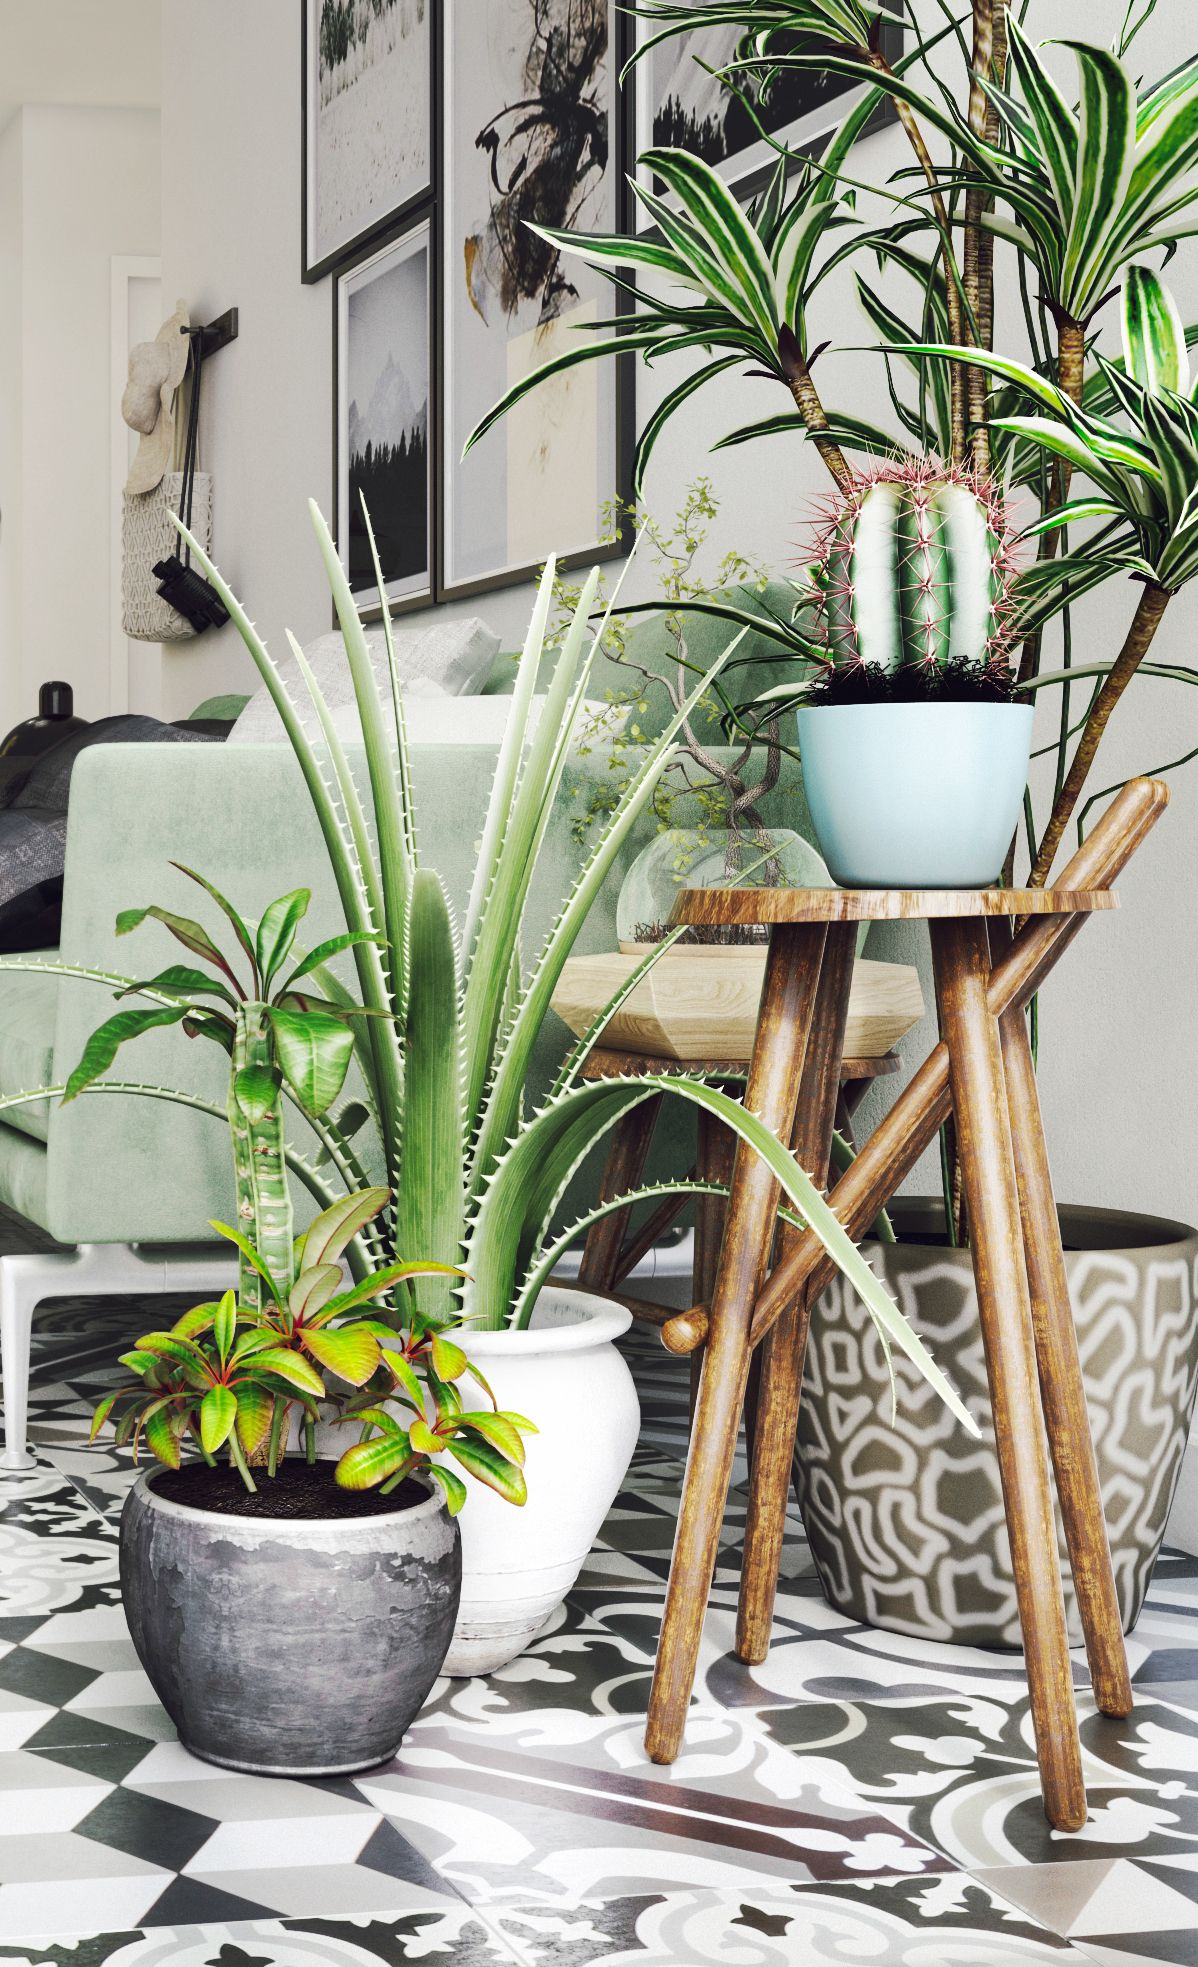 salon botanique accumulation de plantes d interieur pour creer un decor vegetal style urban jungle blogger